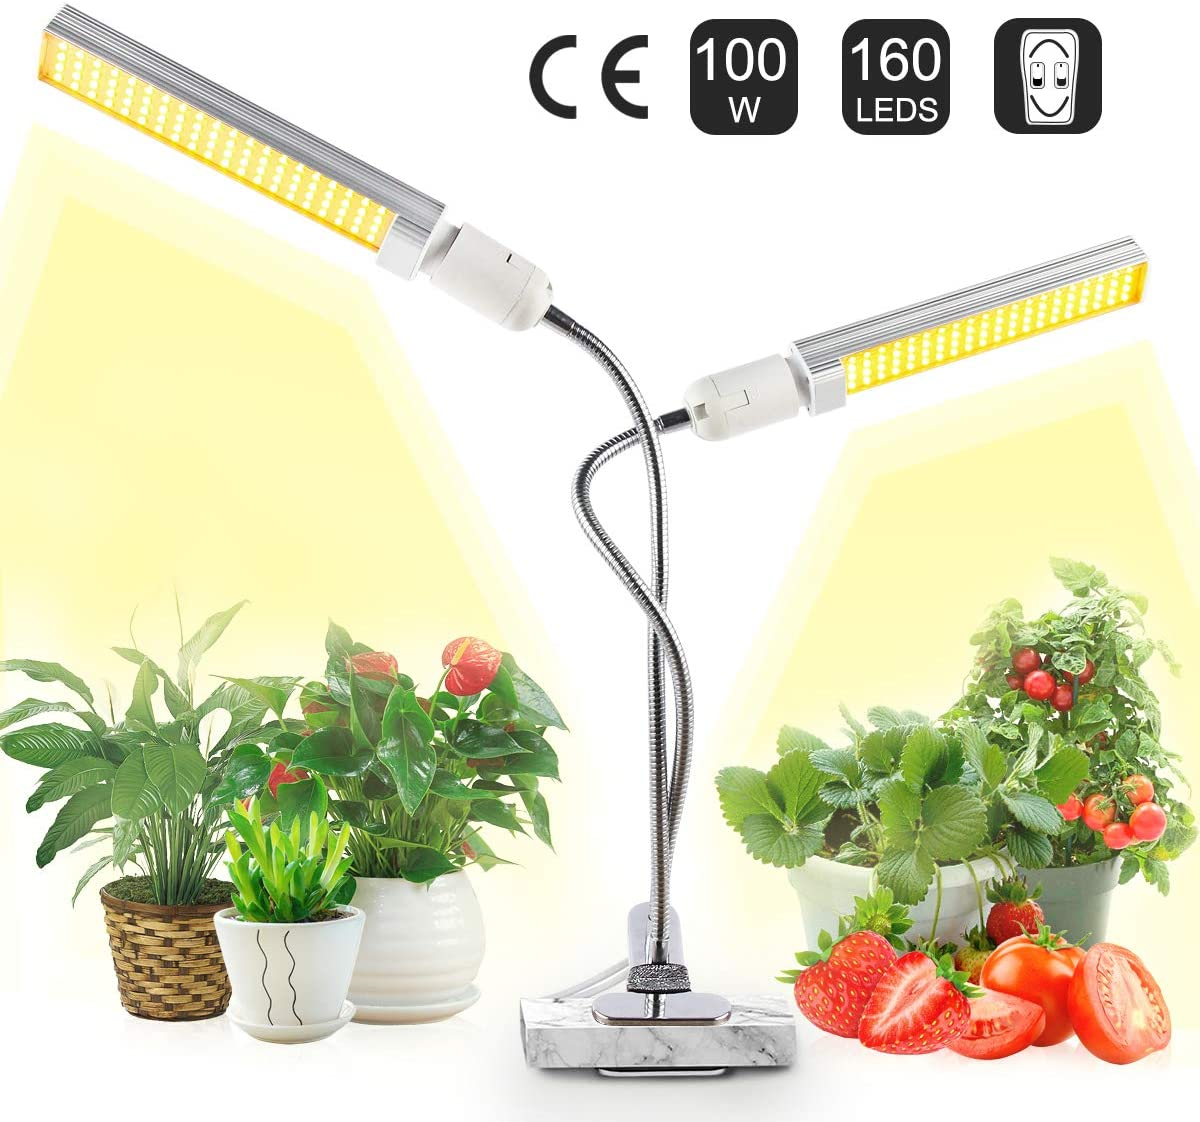 Roleadro Grow Lights for Indoor Plants,80W 3500k Red Blue Full Spectrum Plant Lights with Auto ON Off 3 9 12H Timer, 9 Dimmable Levels, Adjustable Gooseneck, 3 Switch Modes